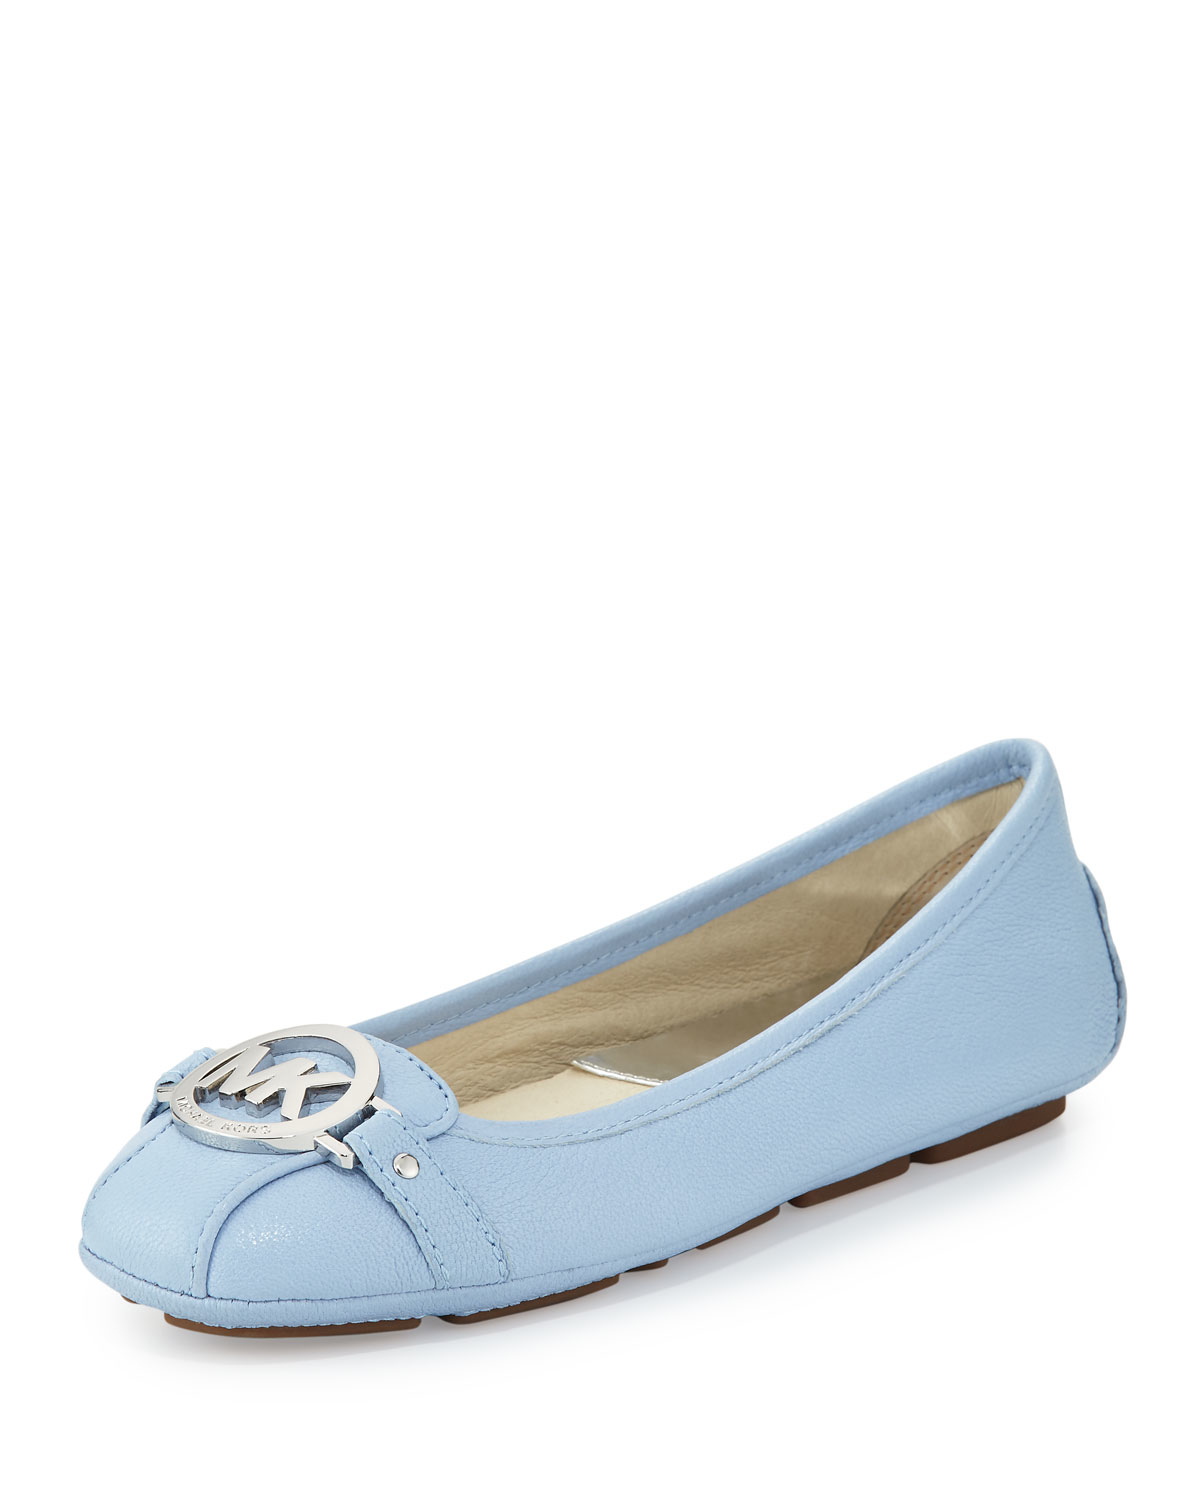 97fb8aebd8f2 Lyst - MICHAEL Michael Kors Fulton Tumbled Leather Moccasin in Blue